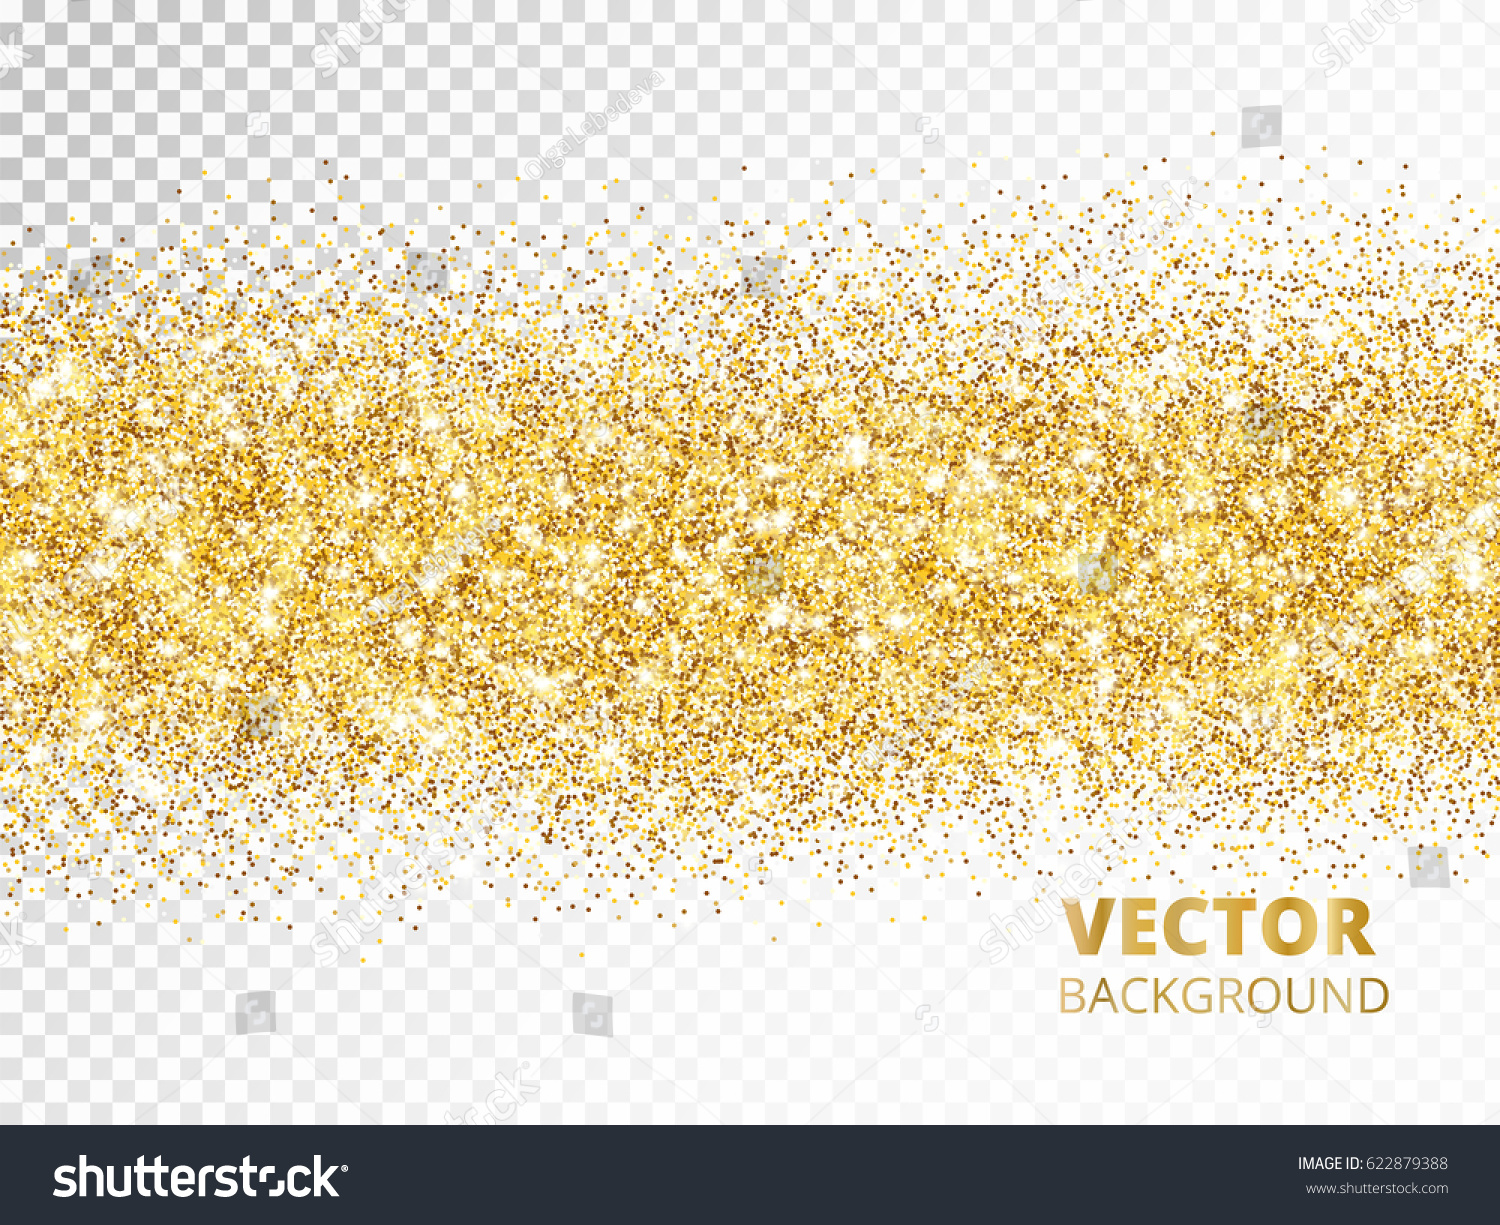 sparkling glitter border isolated on transparent background golden dust golden rectangle of glitter confetti